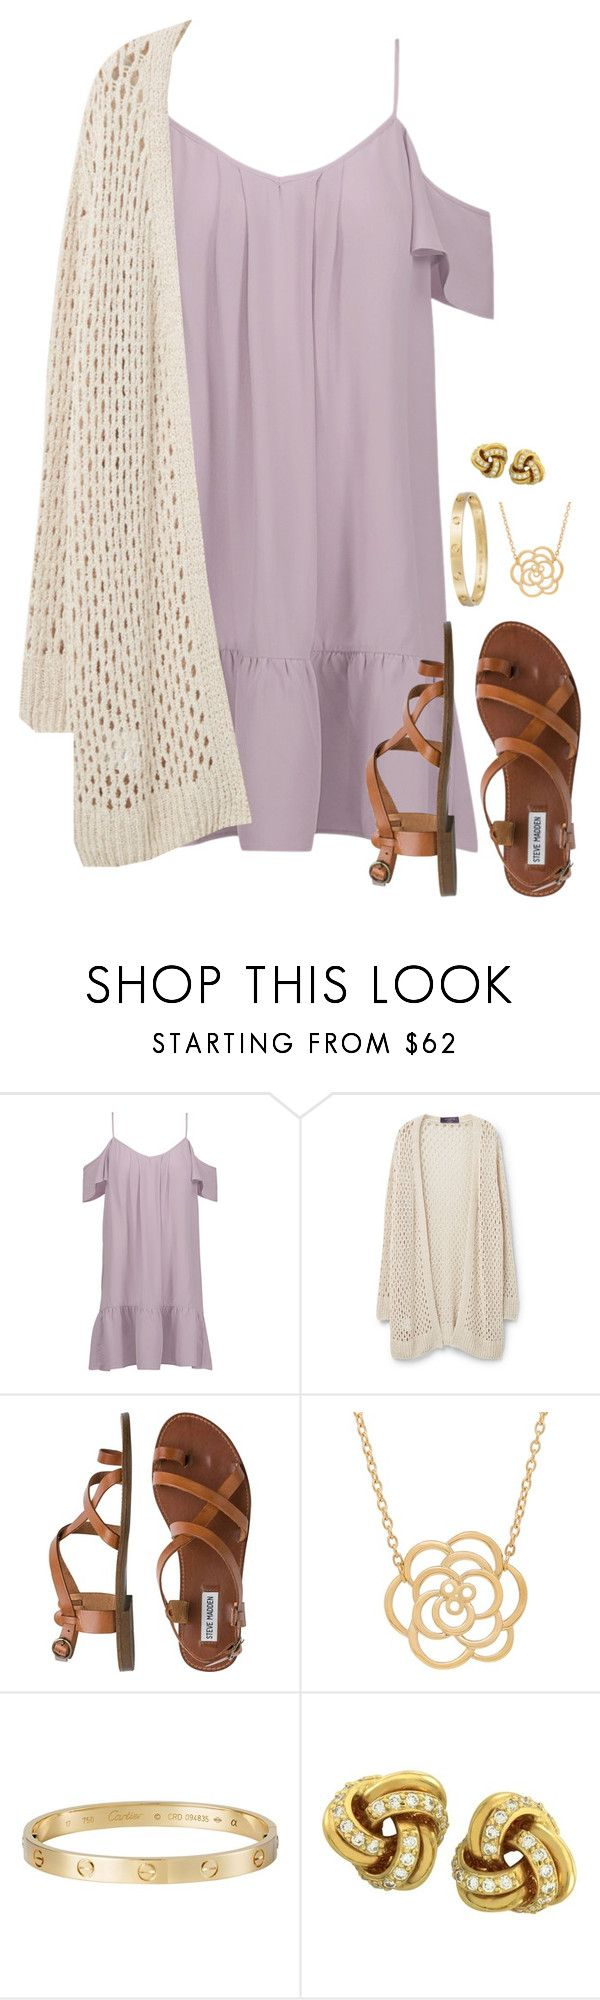 """""""Untitled #648"""" by dauntless-darling on Polyvore featuring Joie, Violeta by Mango, Steve Madden, Lord & Taylor, Cartier and Tiffany & Co."""